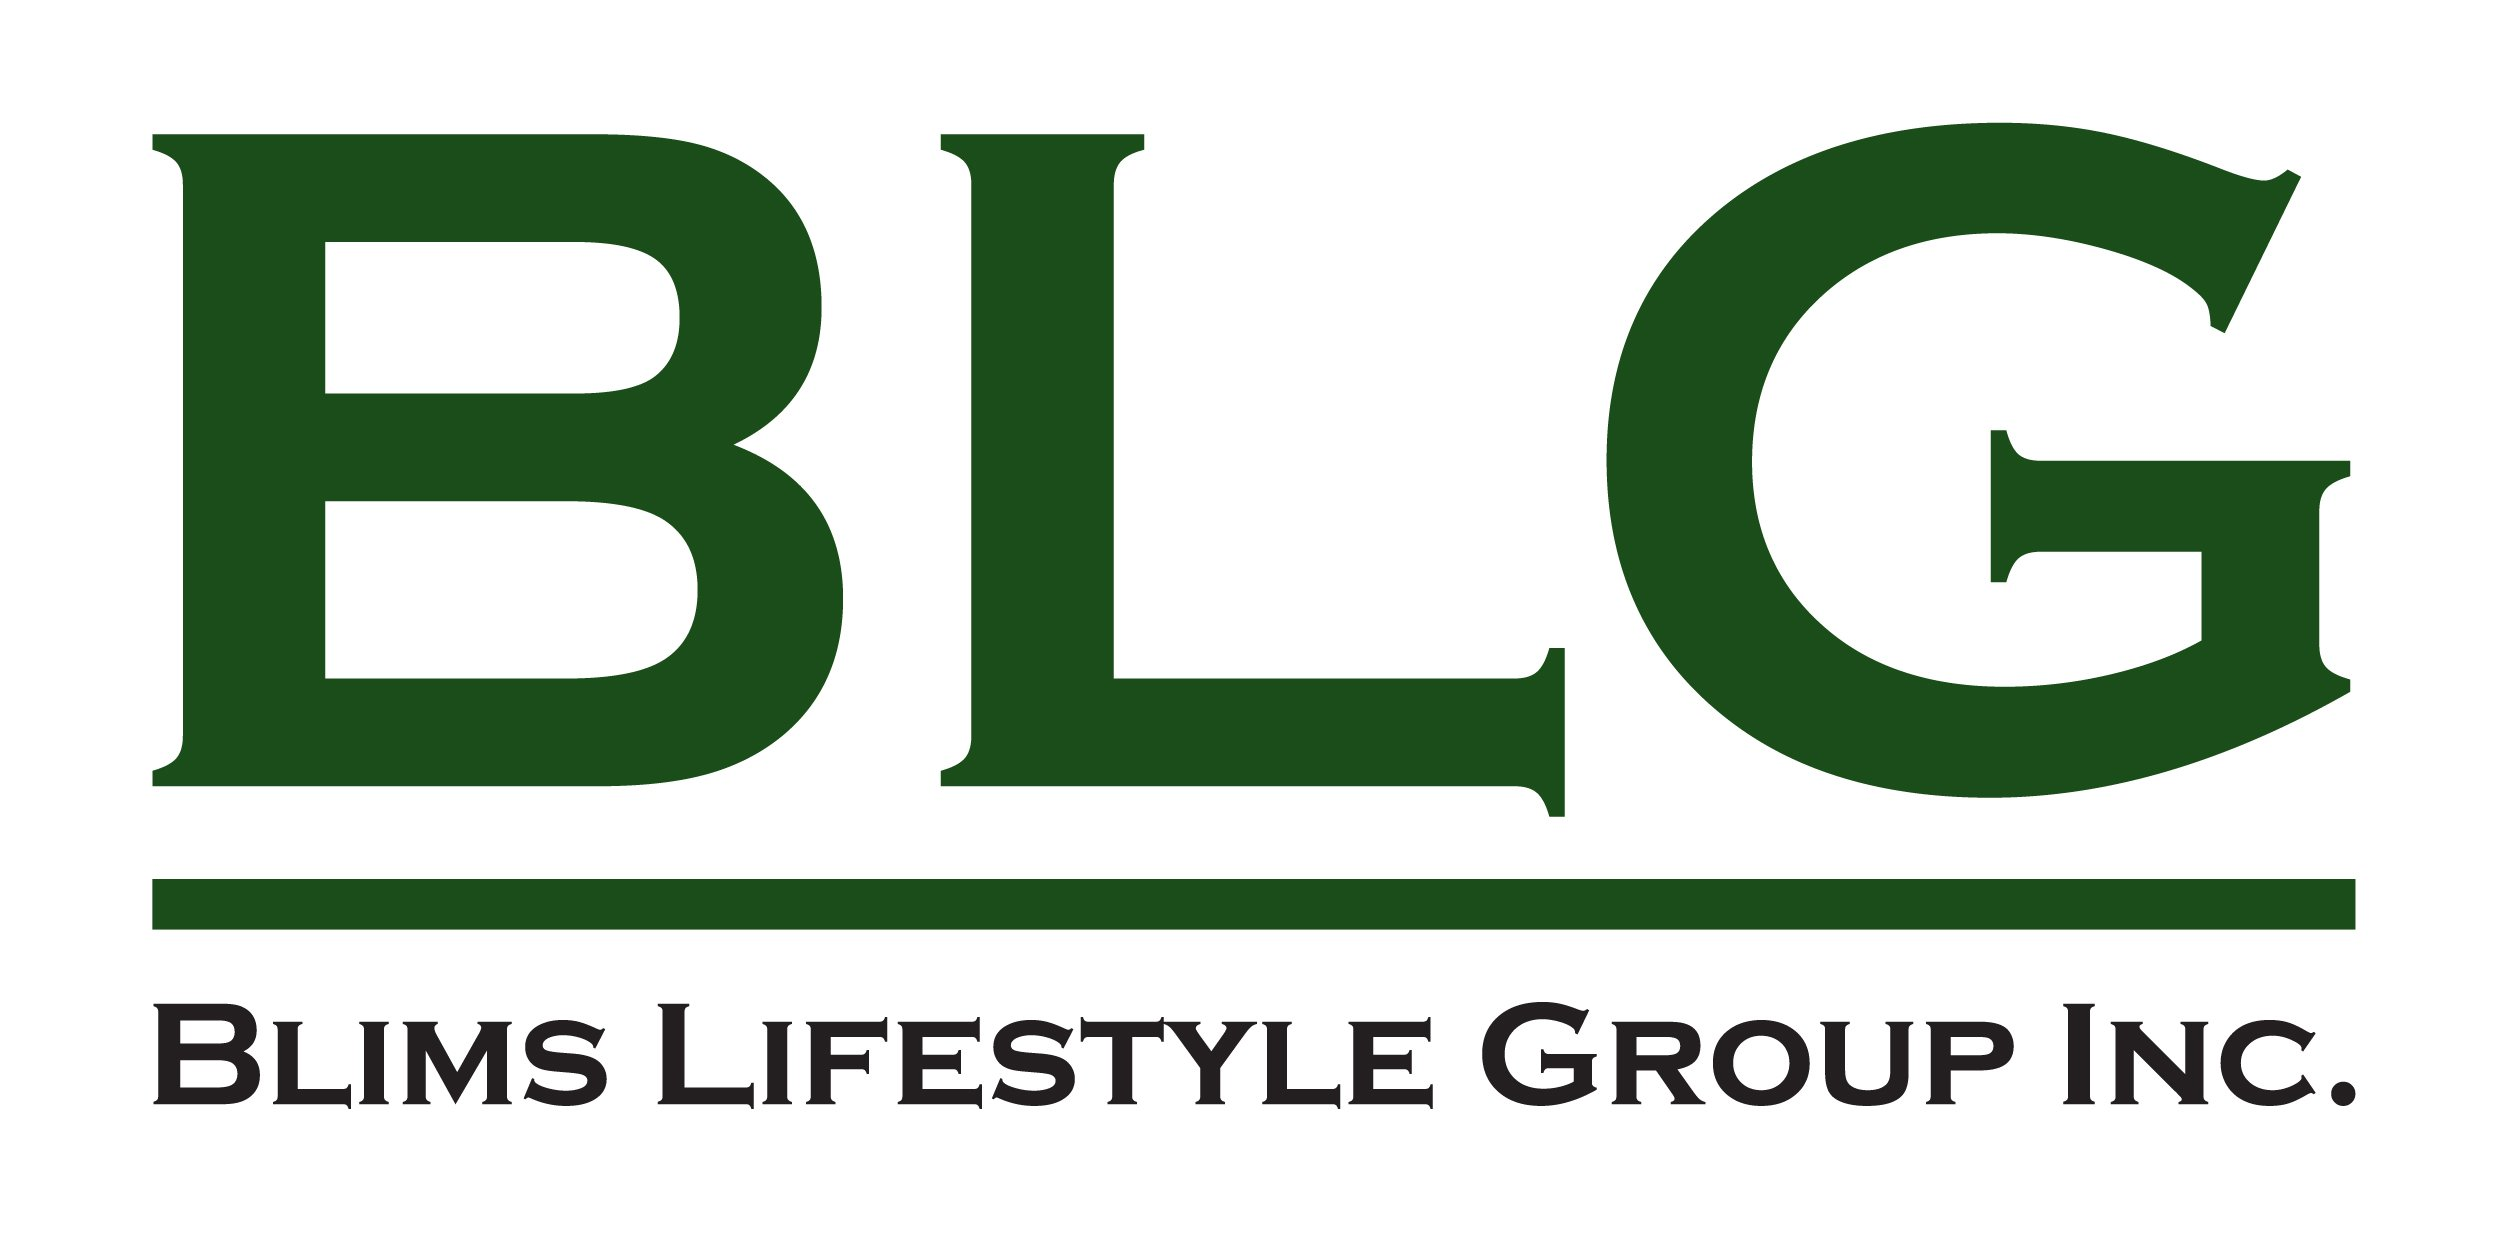 BLIMS LIFESTYLE GROUP, INC.